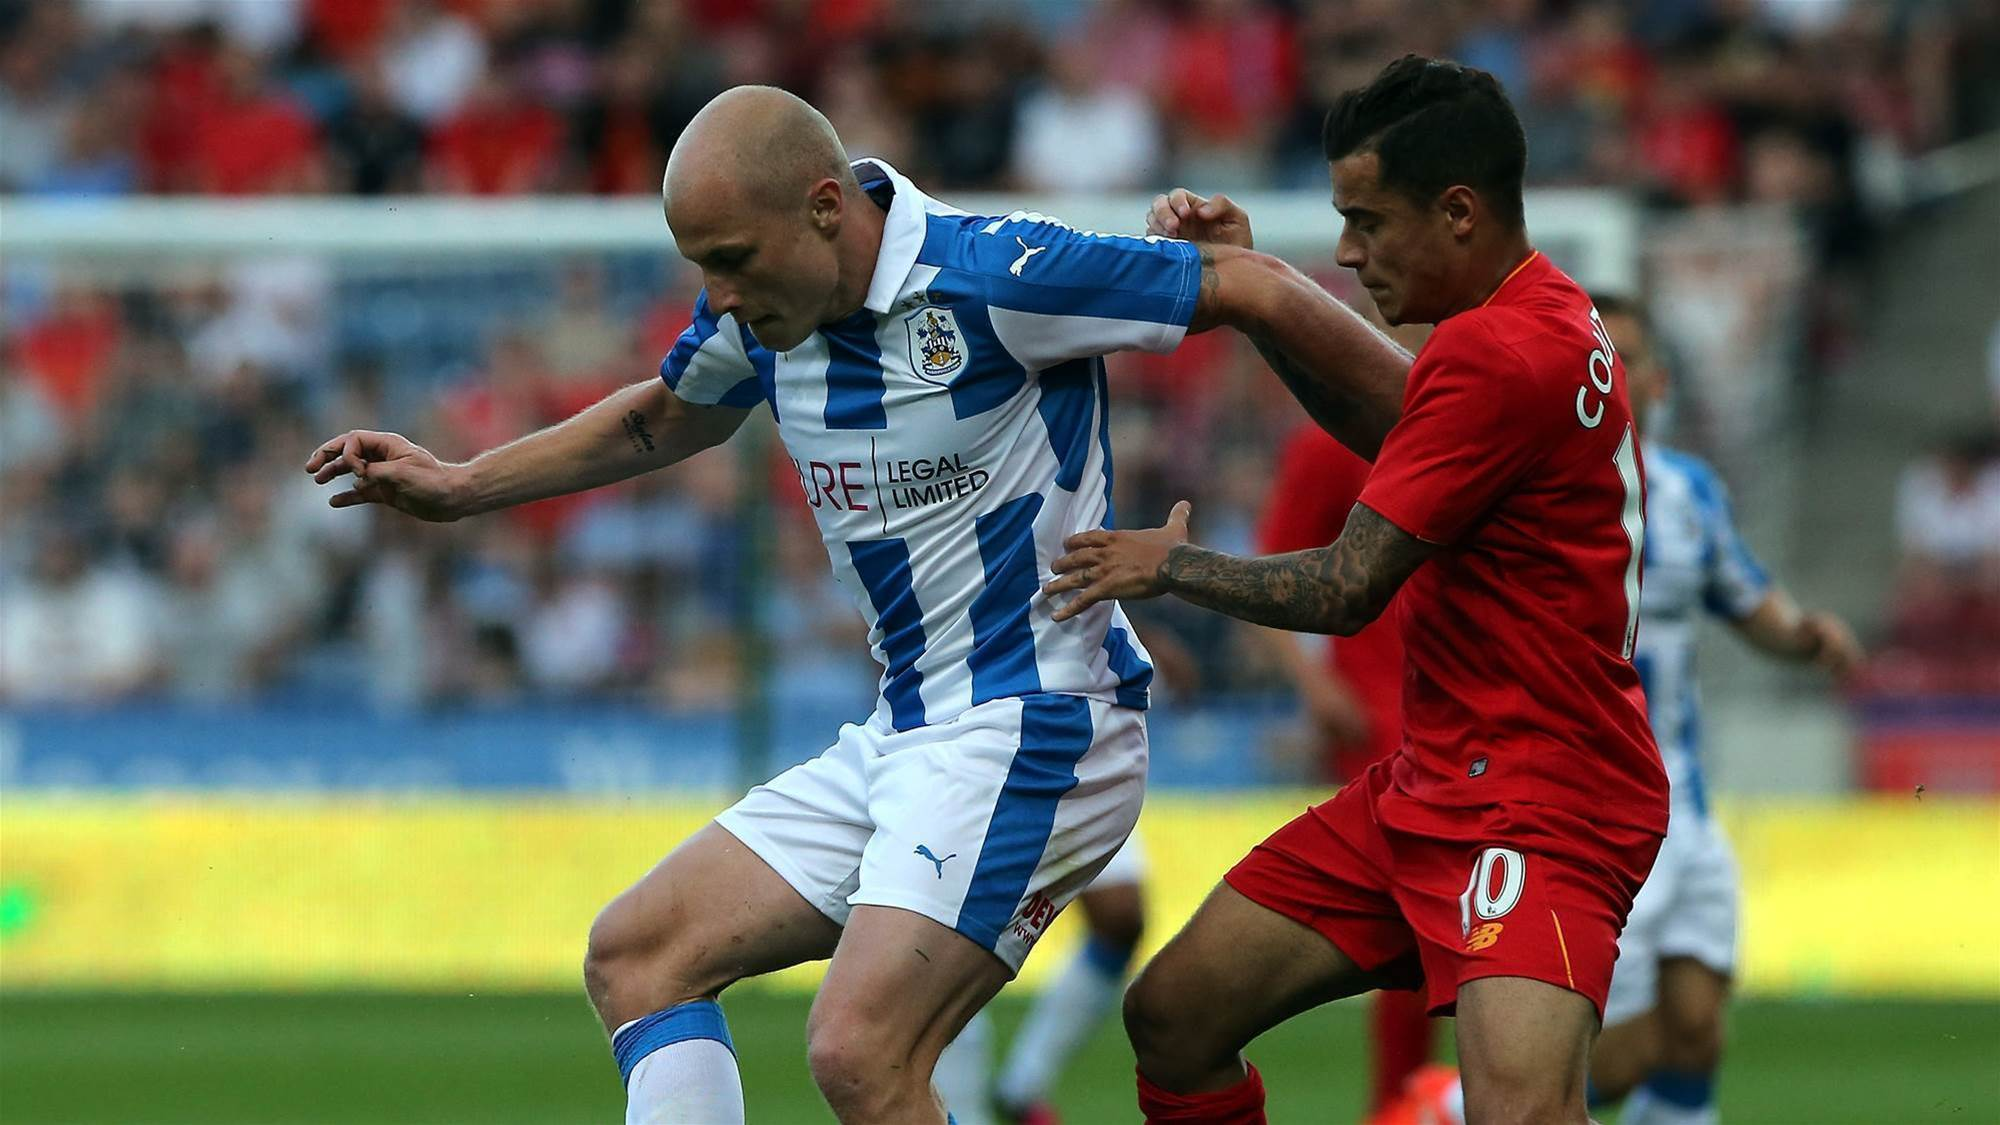 Which Premier League team is the best fit for Aaron Mooy?